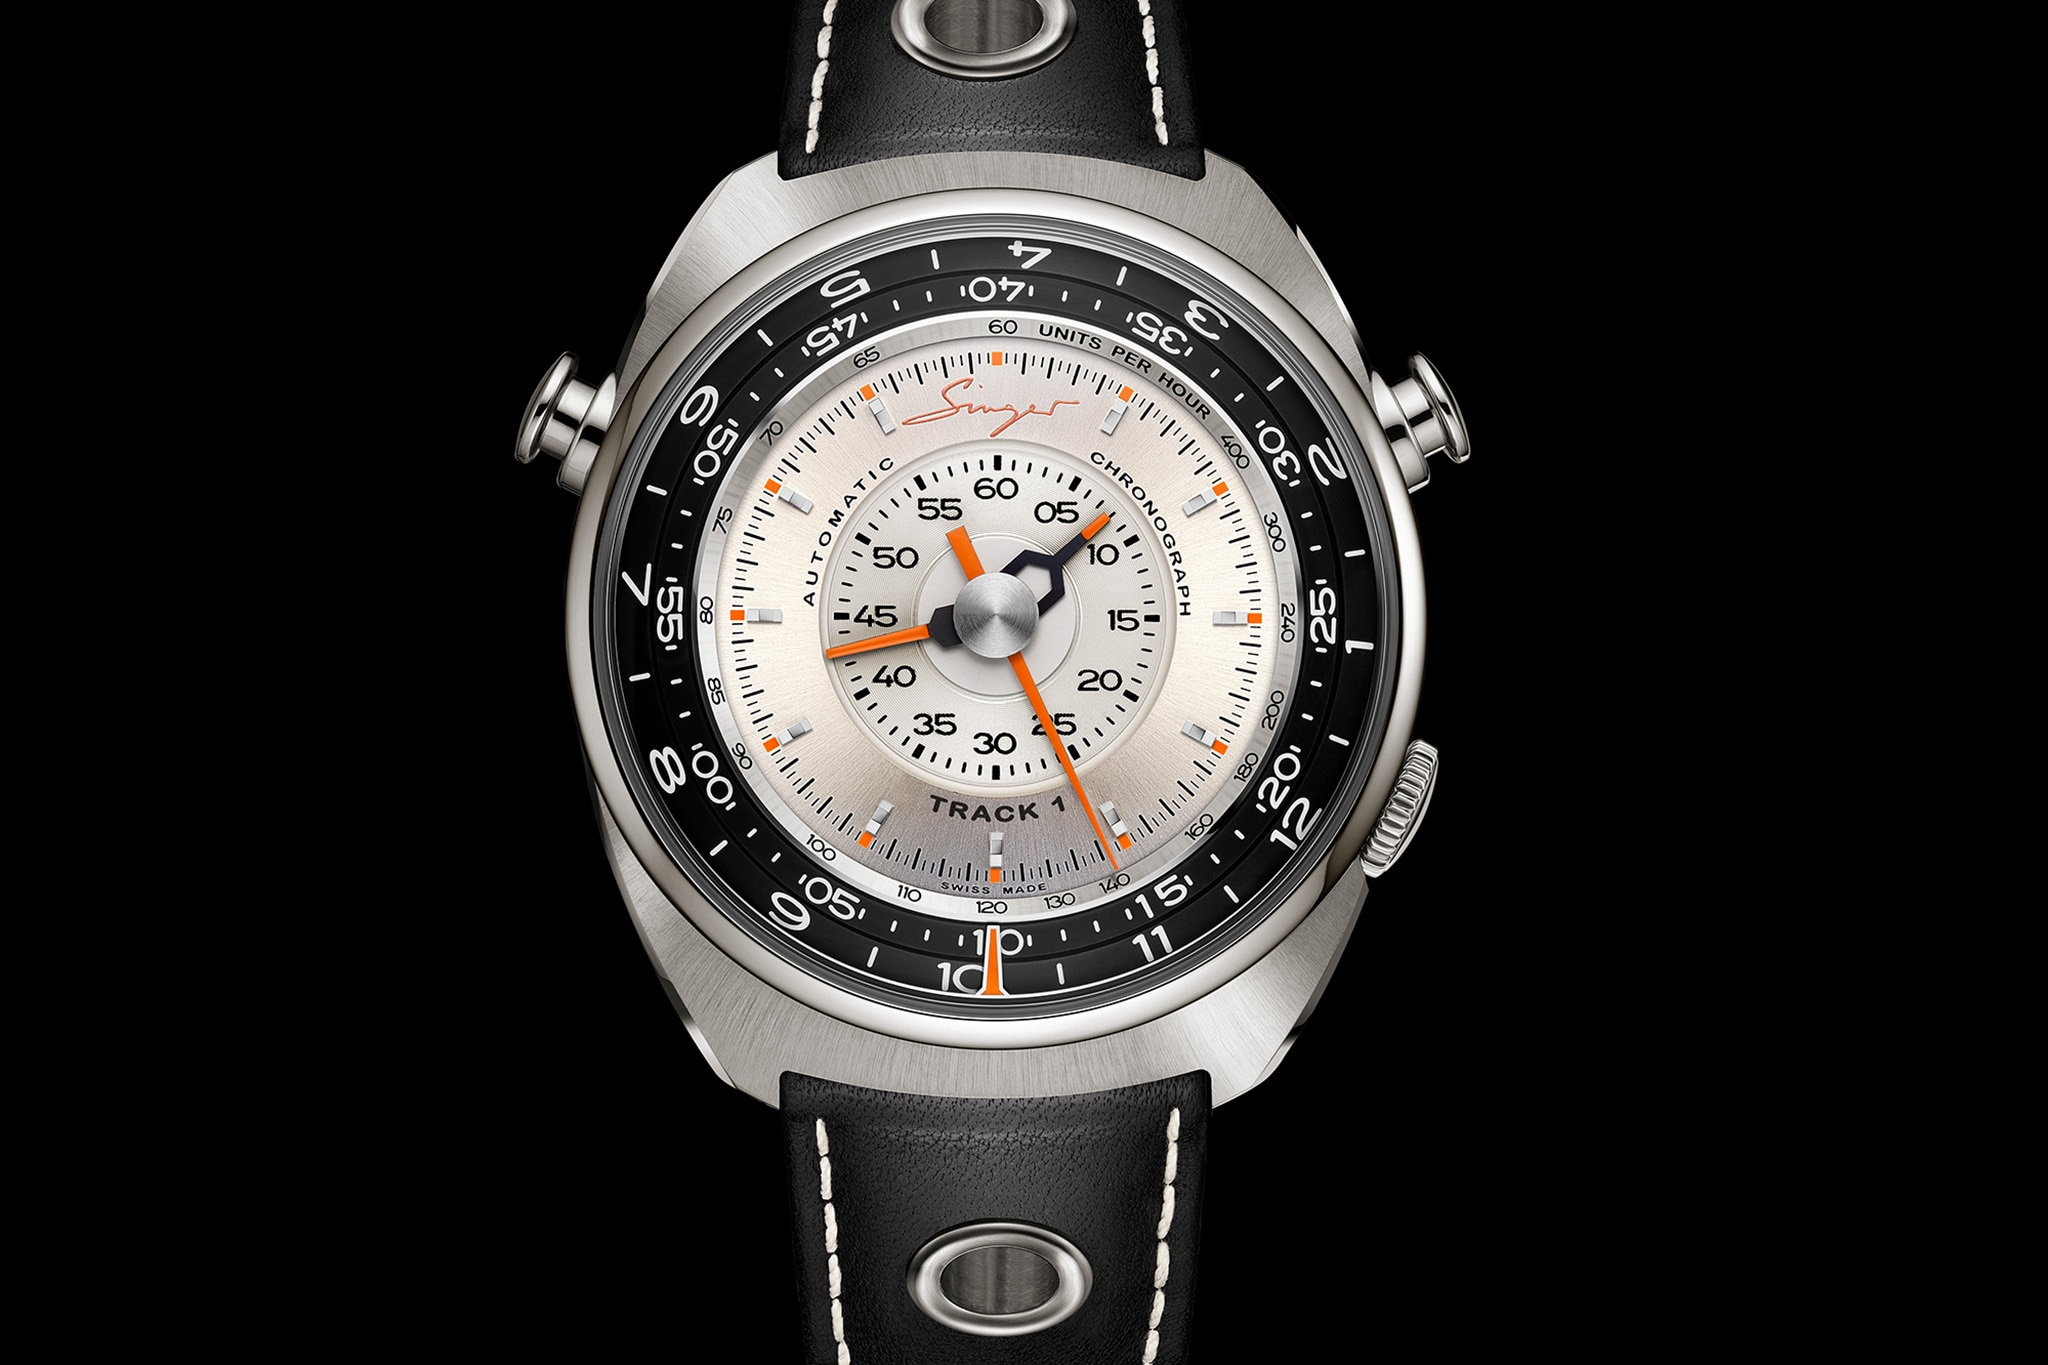 Singer Vehicle Design Releases First Watch, The Track 1